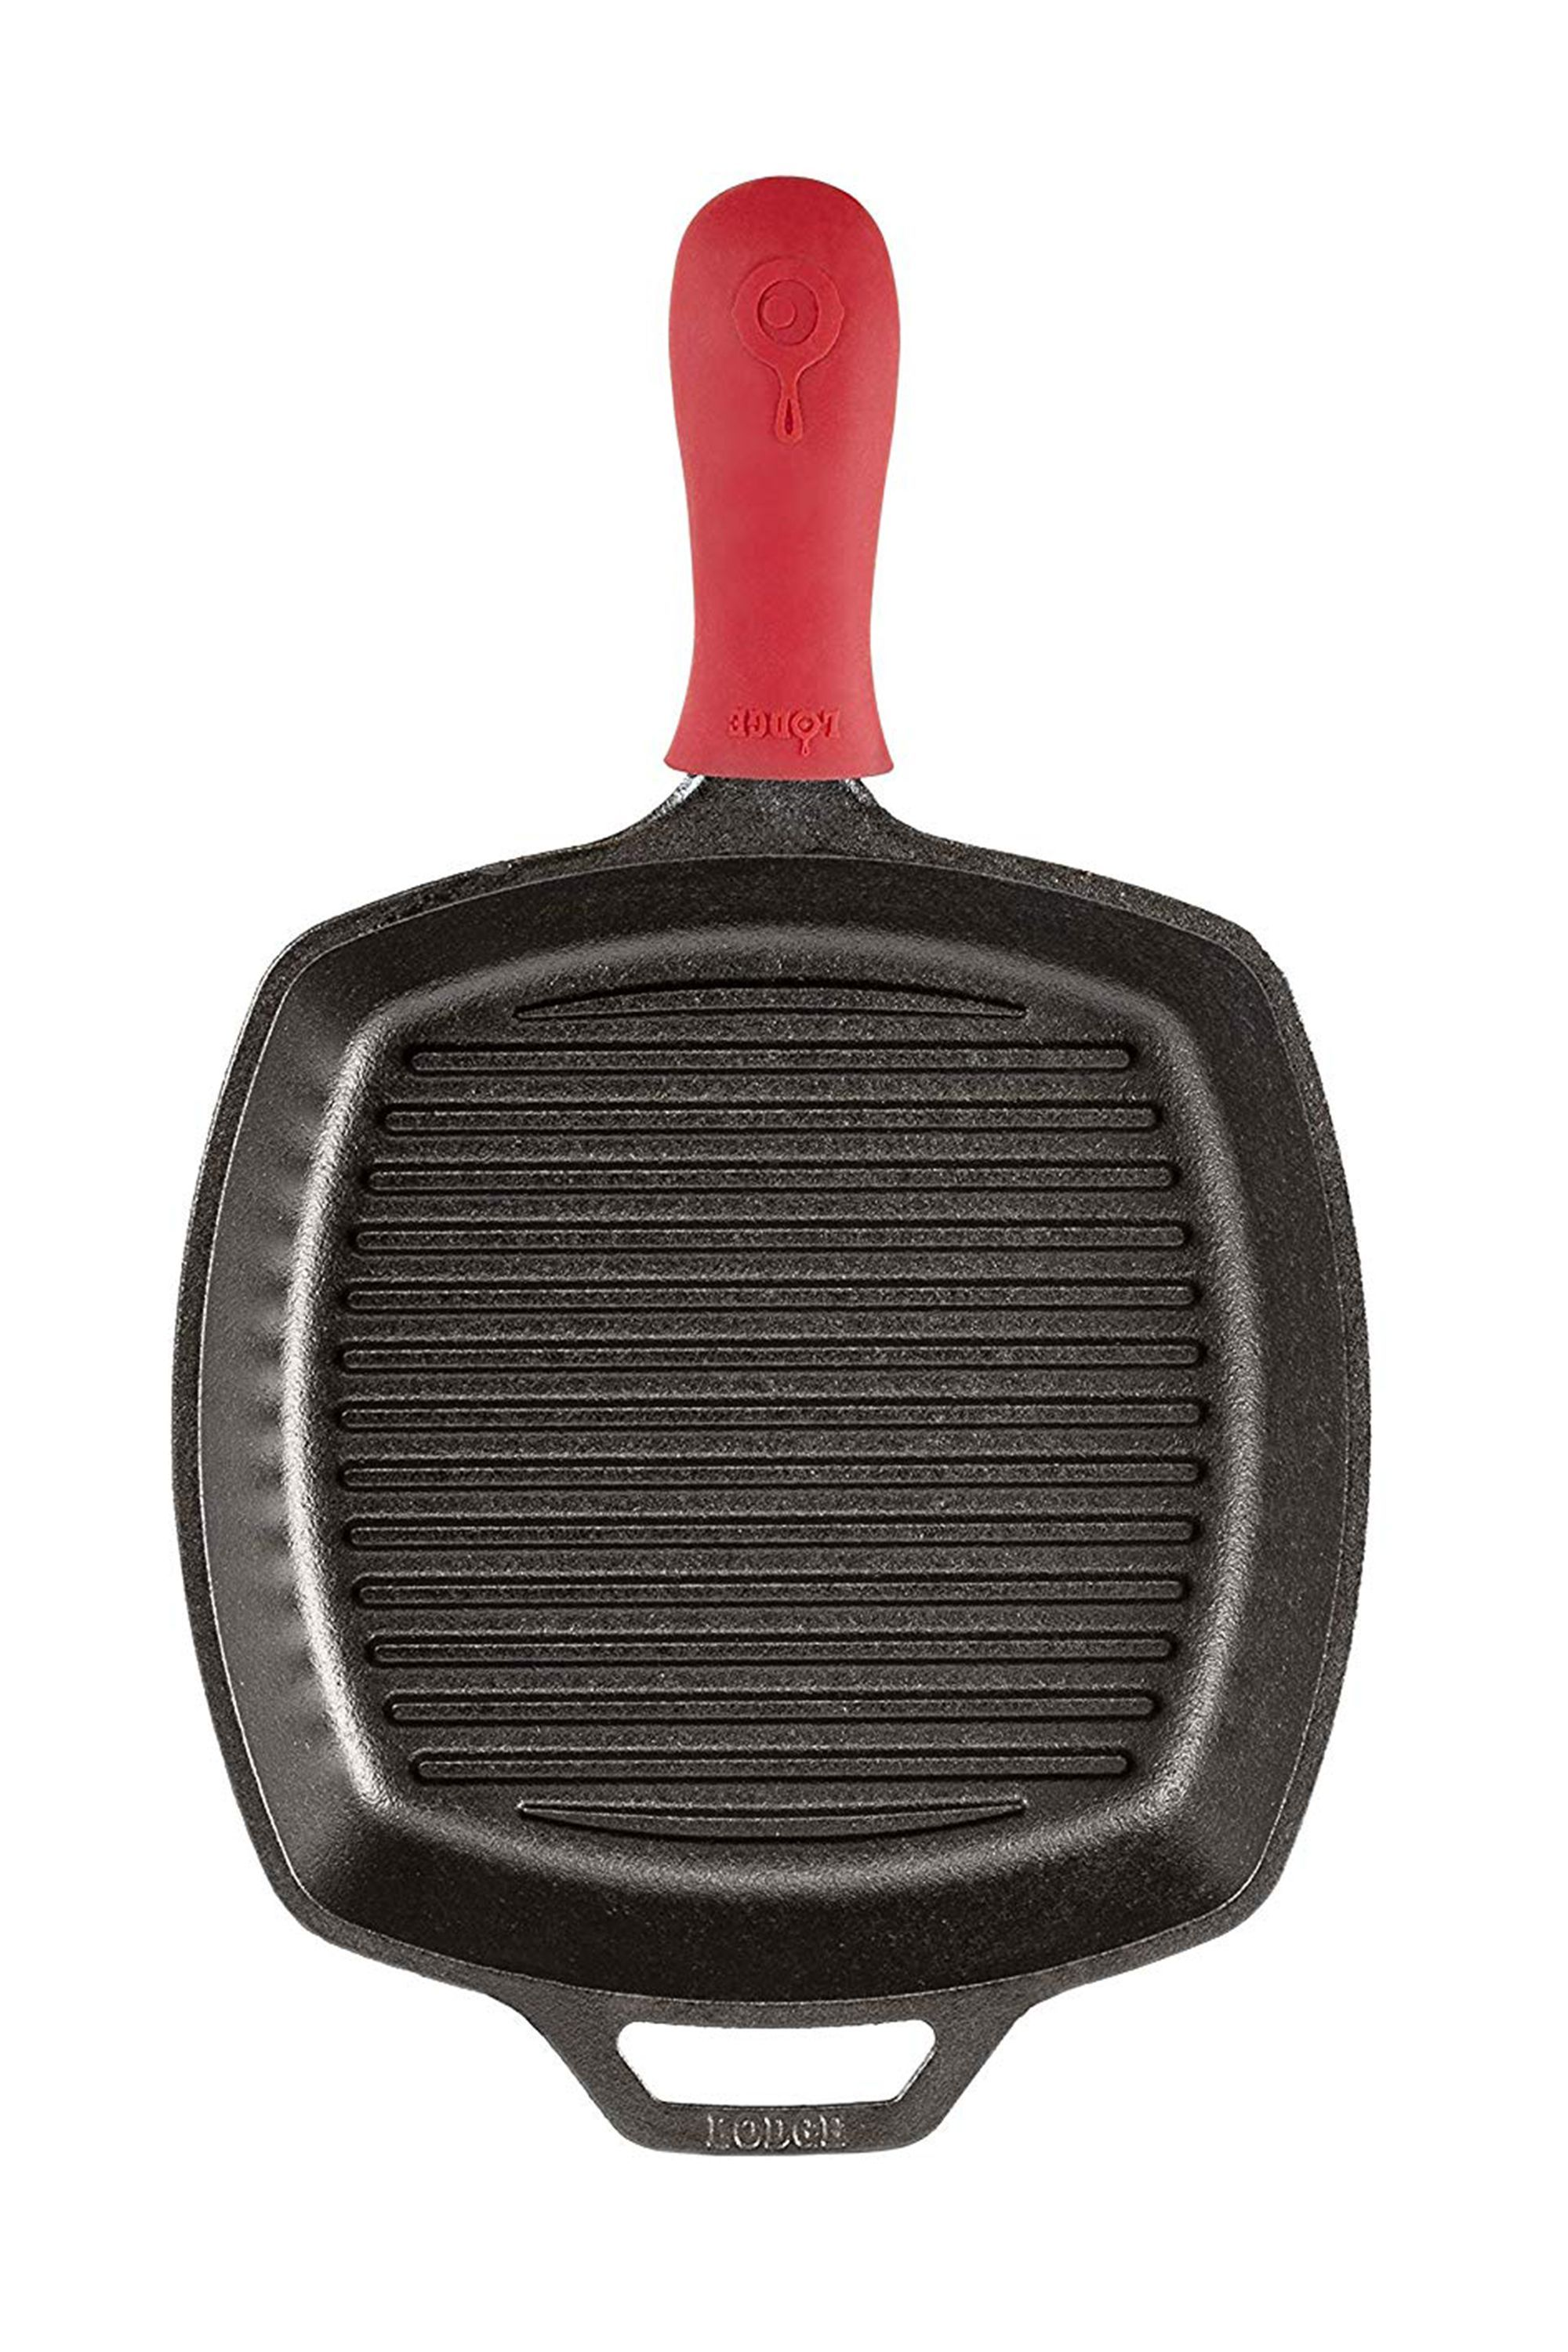 Cast Iron 10.5-inch Square Grill Pan Lodge amazon.com $22.79 SHOP NOW Dads make the best grilled cheese sandwiches. This cast iron grill will make them godly.